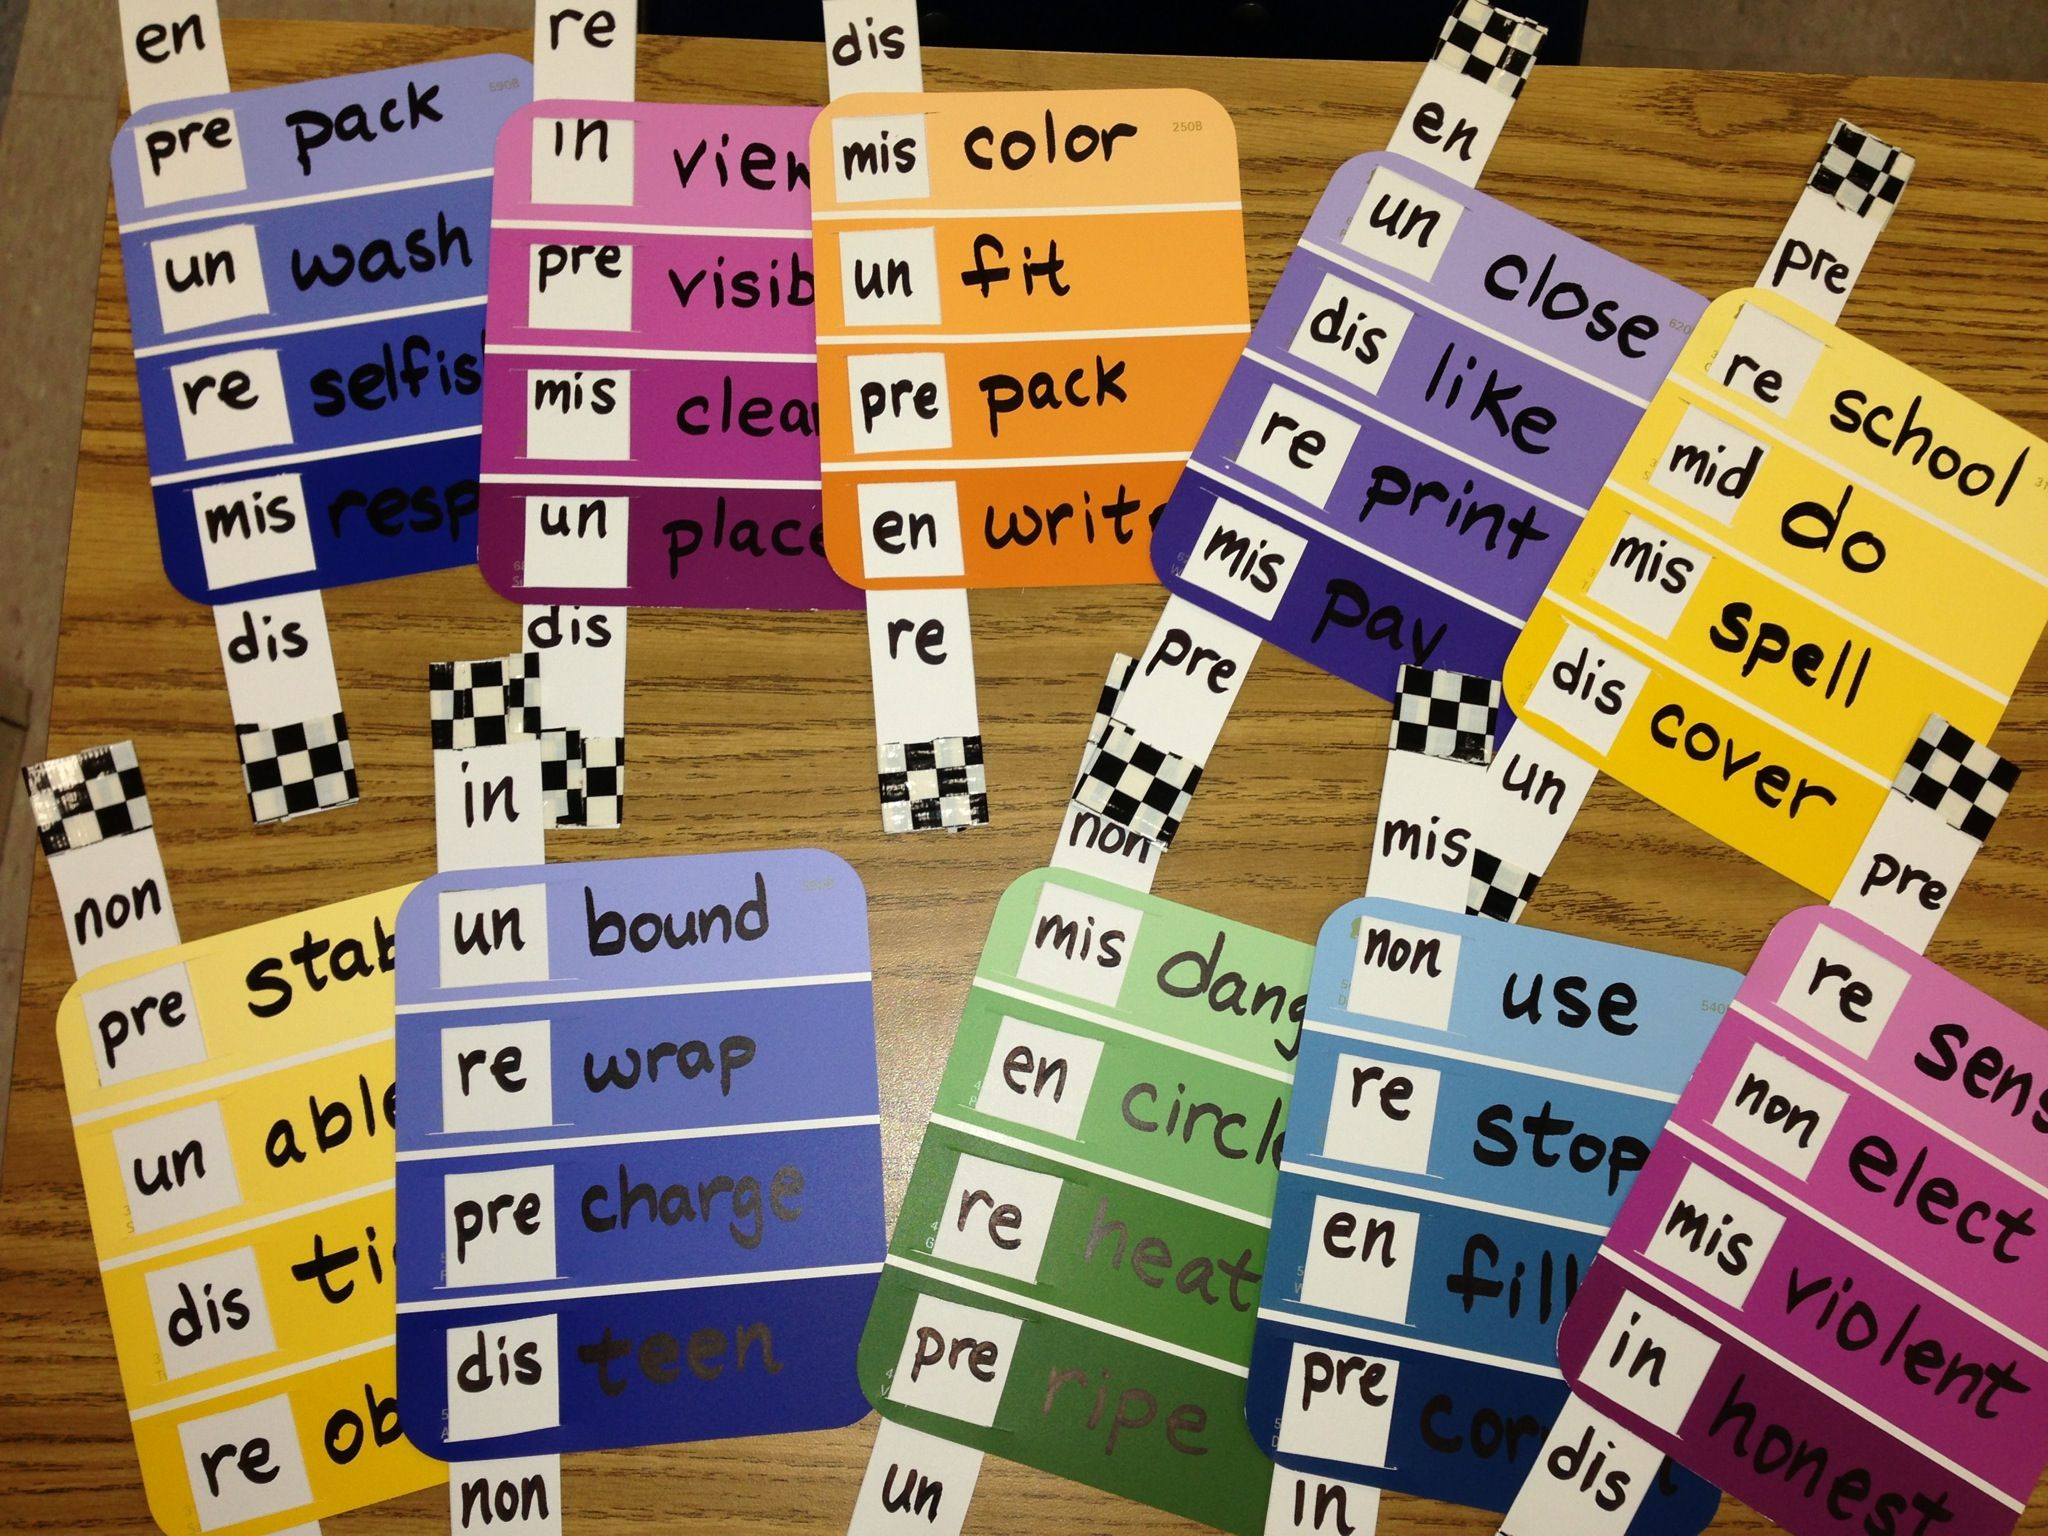 Prefixes And Suffixes On Paint Chip Samples Have Students Create The New Words And Write Them